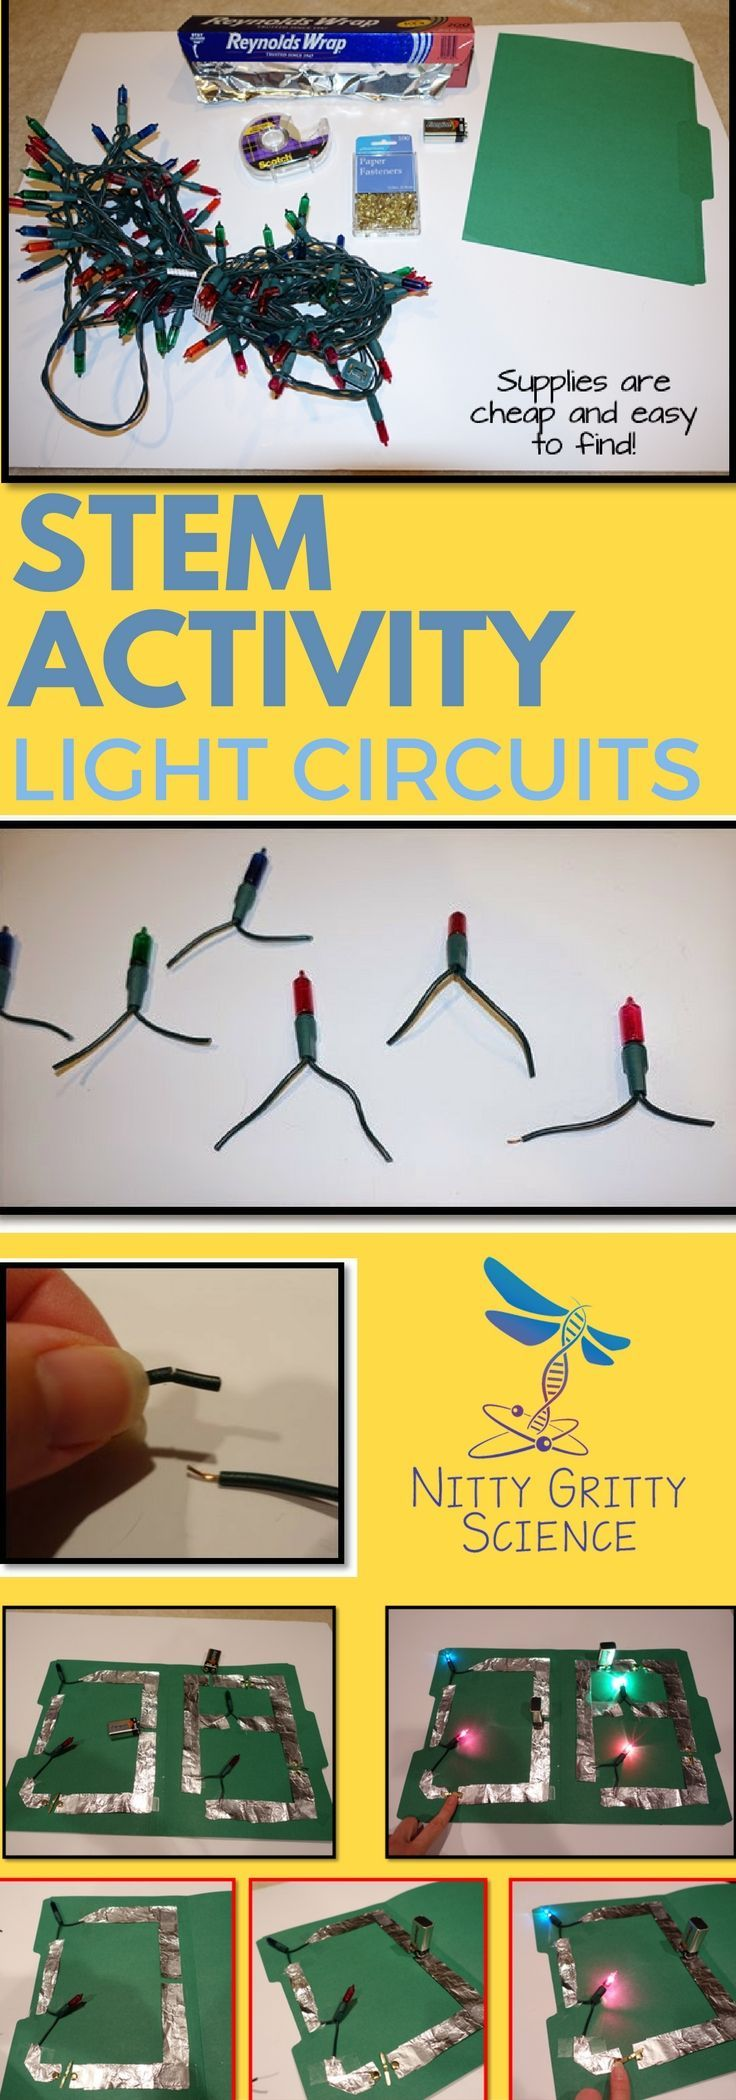 How Do You Make A Parallel Circuit Light Circuits Depending On The Grade Level Of Students Can Have Them Build Very Simple Or Complex With Both Series And